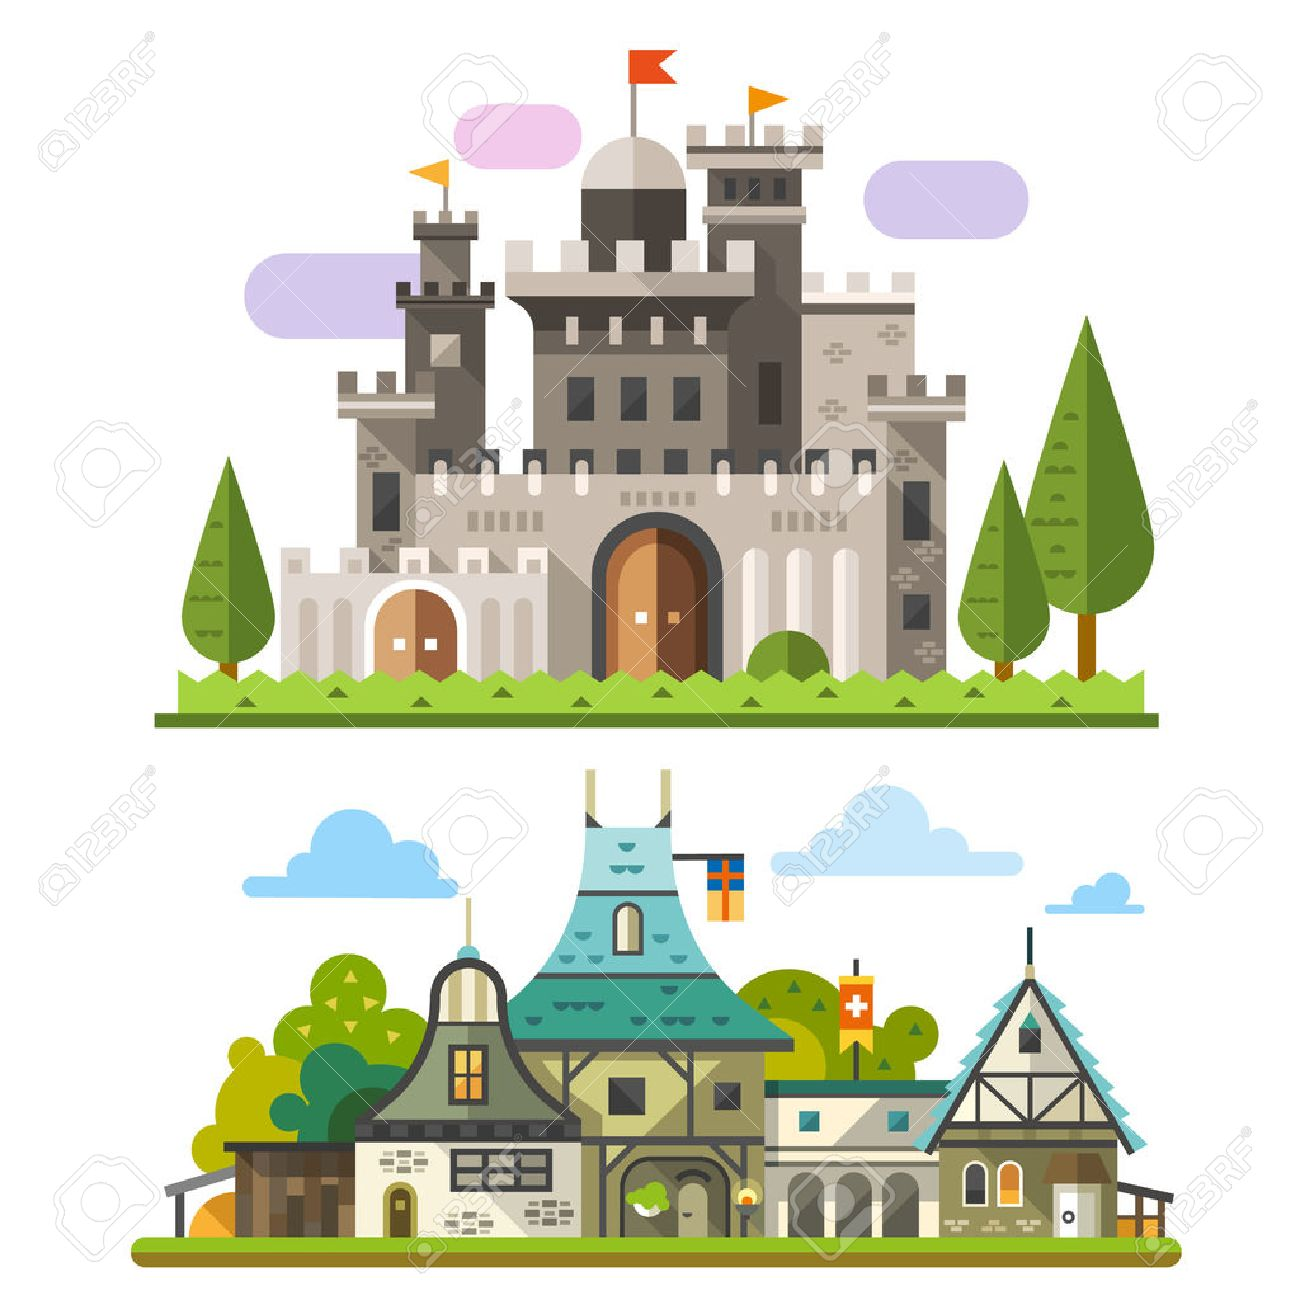 Medieval stone fortress and old timber house landscapes. Sprites for game. Vector flat illustrations - 40502888